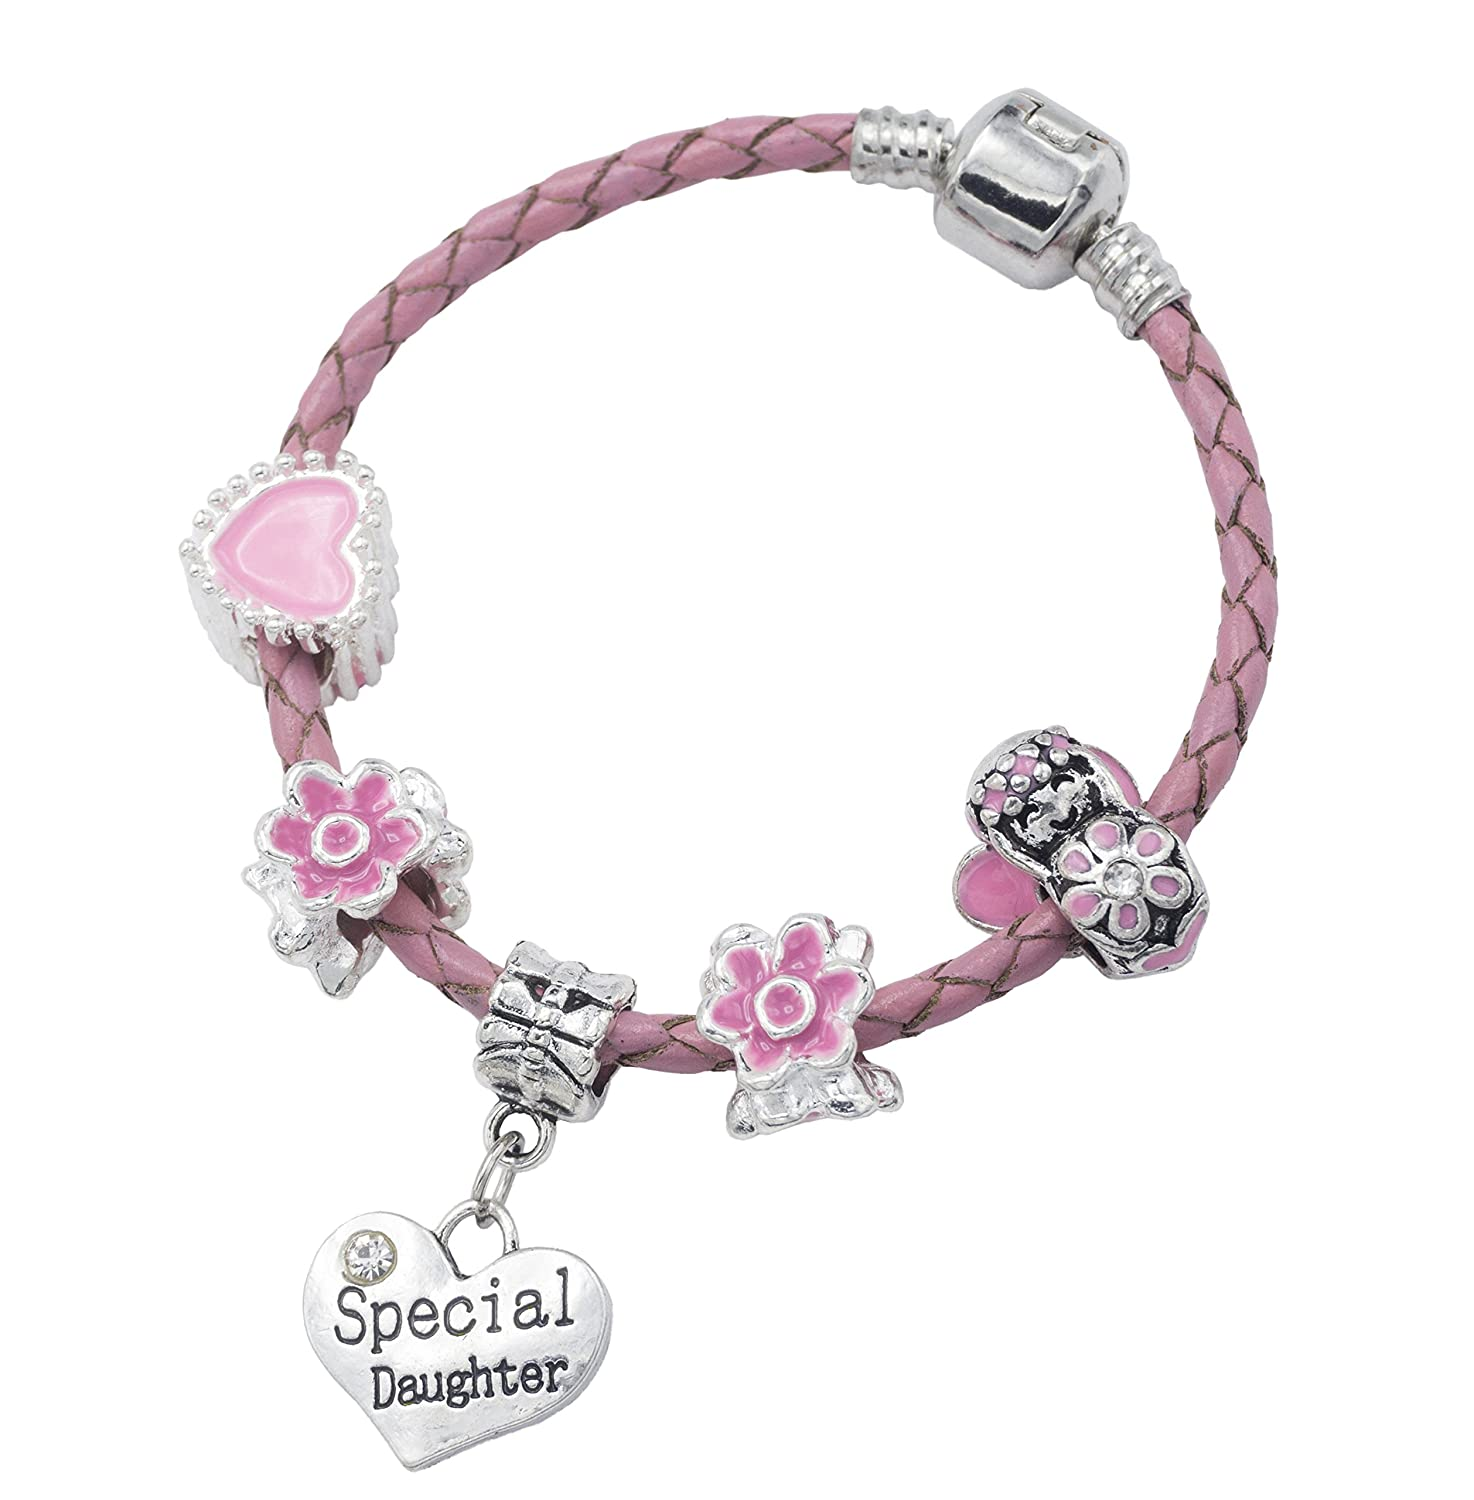 'Special Daughter' Pink Leather Charm Bracelet for Girls Presented in High Quality Gift Pouch Jewellery Hut BRPNKLTSPECIALDAUGHTER